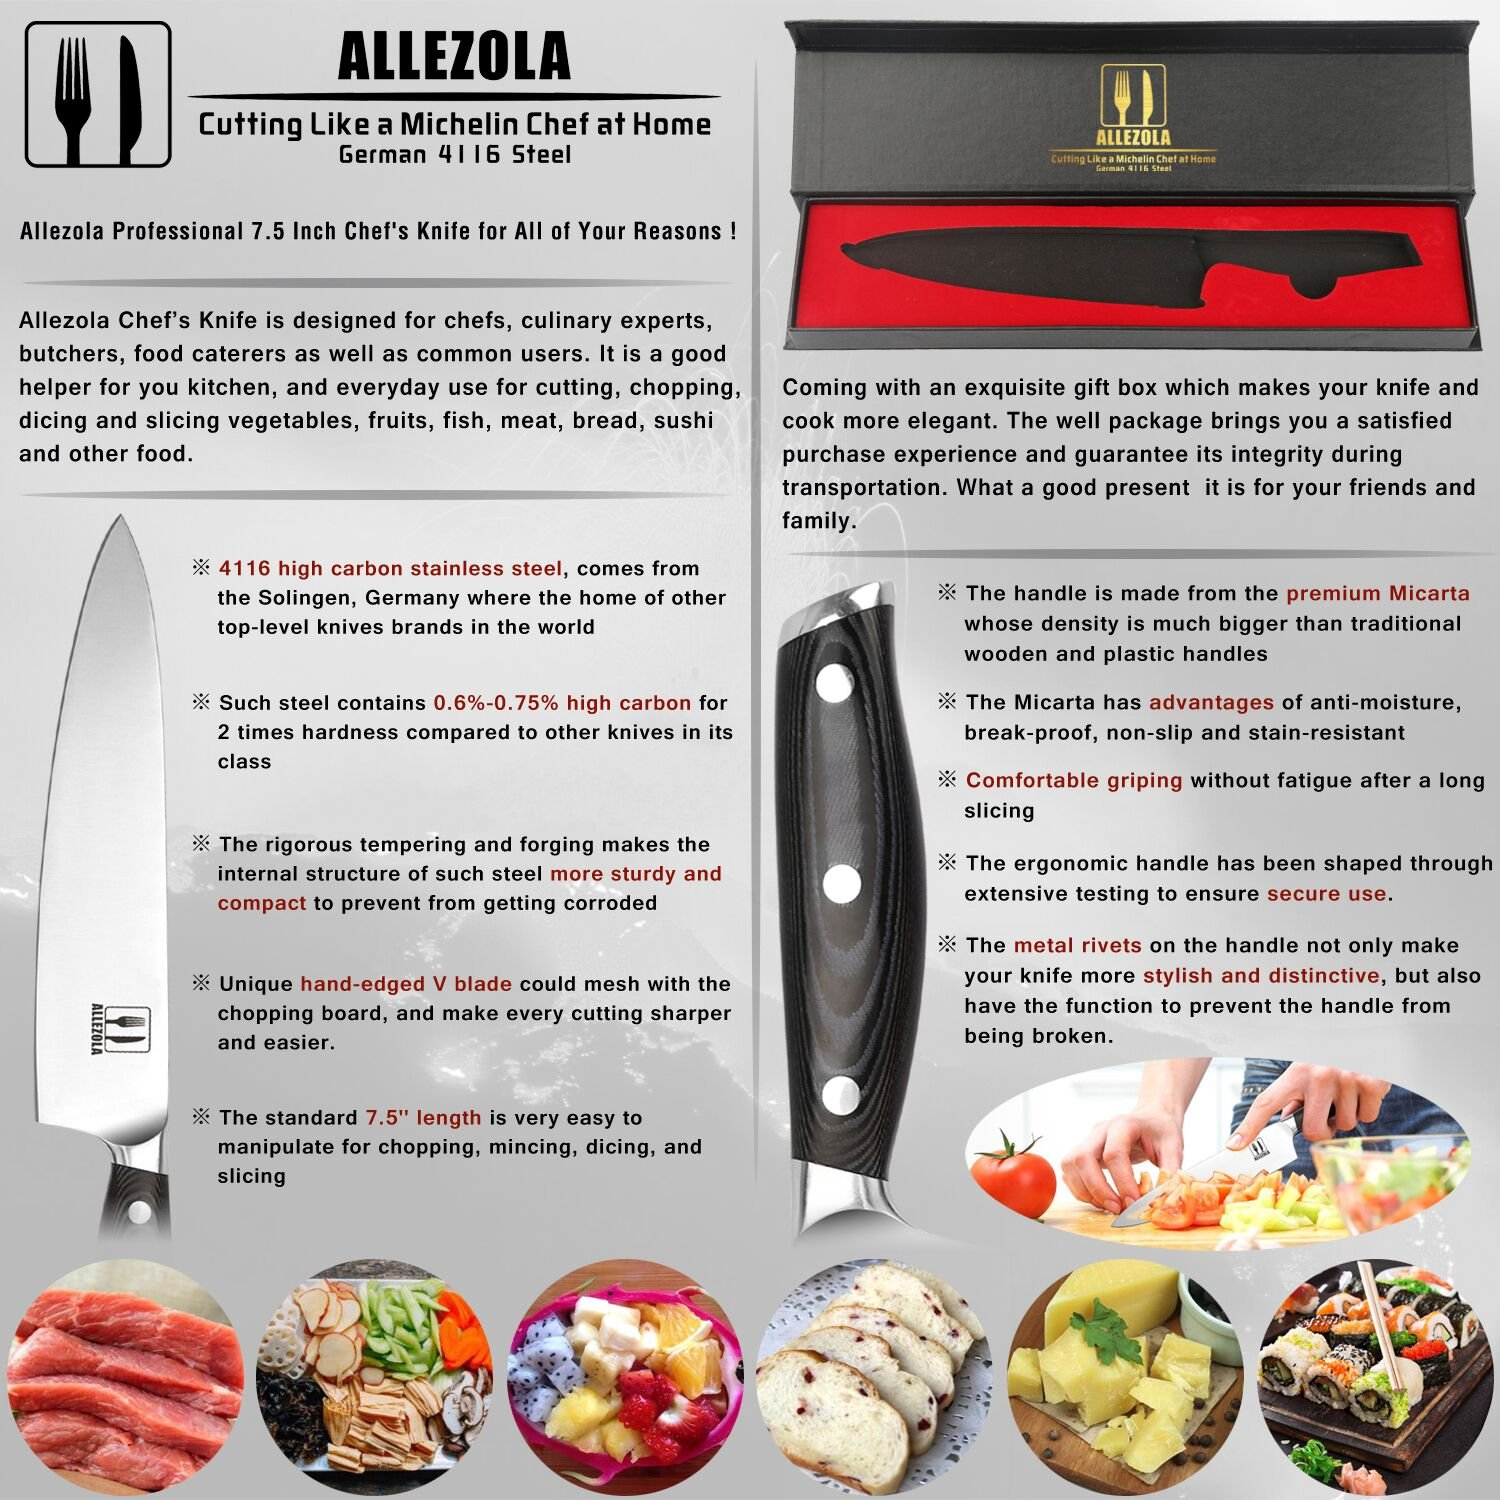 Allezola 7.5 Inch Professional Chef Knife Kitchen Knives German High Carbon Stainless Steel with Ergonomic Handle, Cooking knife for Home and Restaurant by Allezola (Image #2)